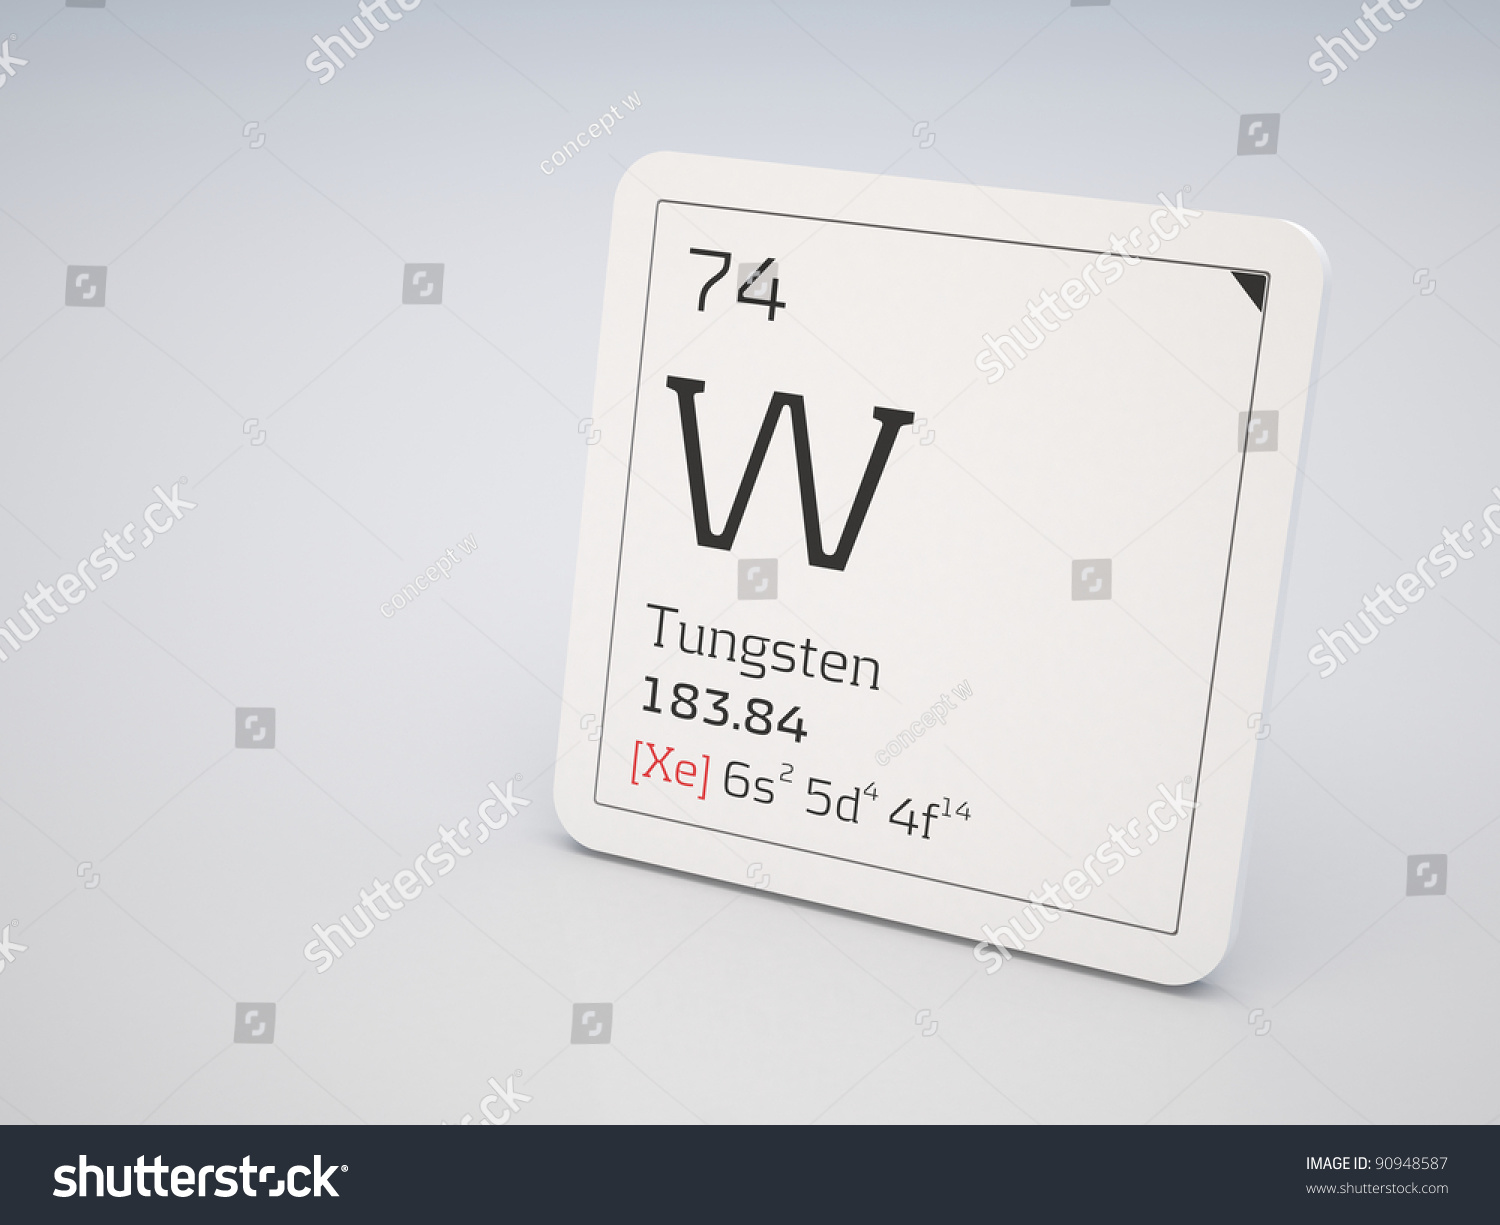 Symbol for tungsten on periodic table image collections periodic symbol for tungsten on periodic table image collections periodic tungsten symbol periodic table image collections periodic gamestrikefo Choice Image